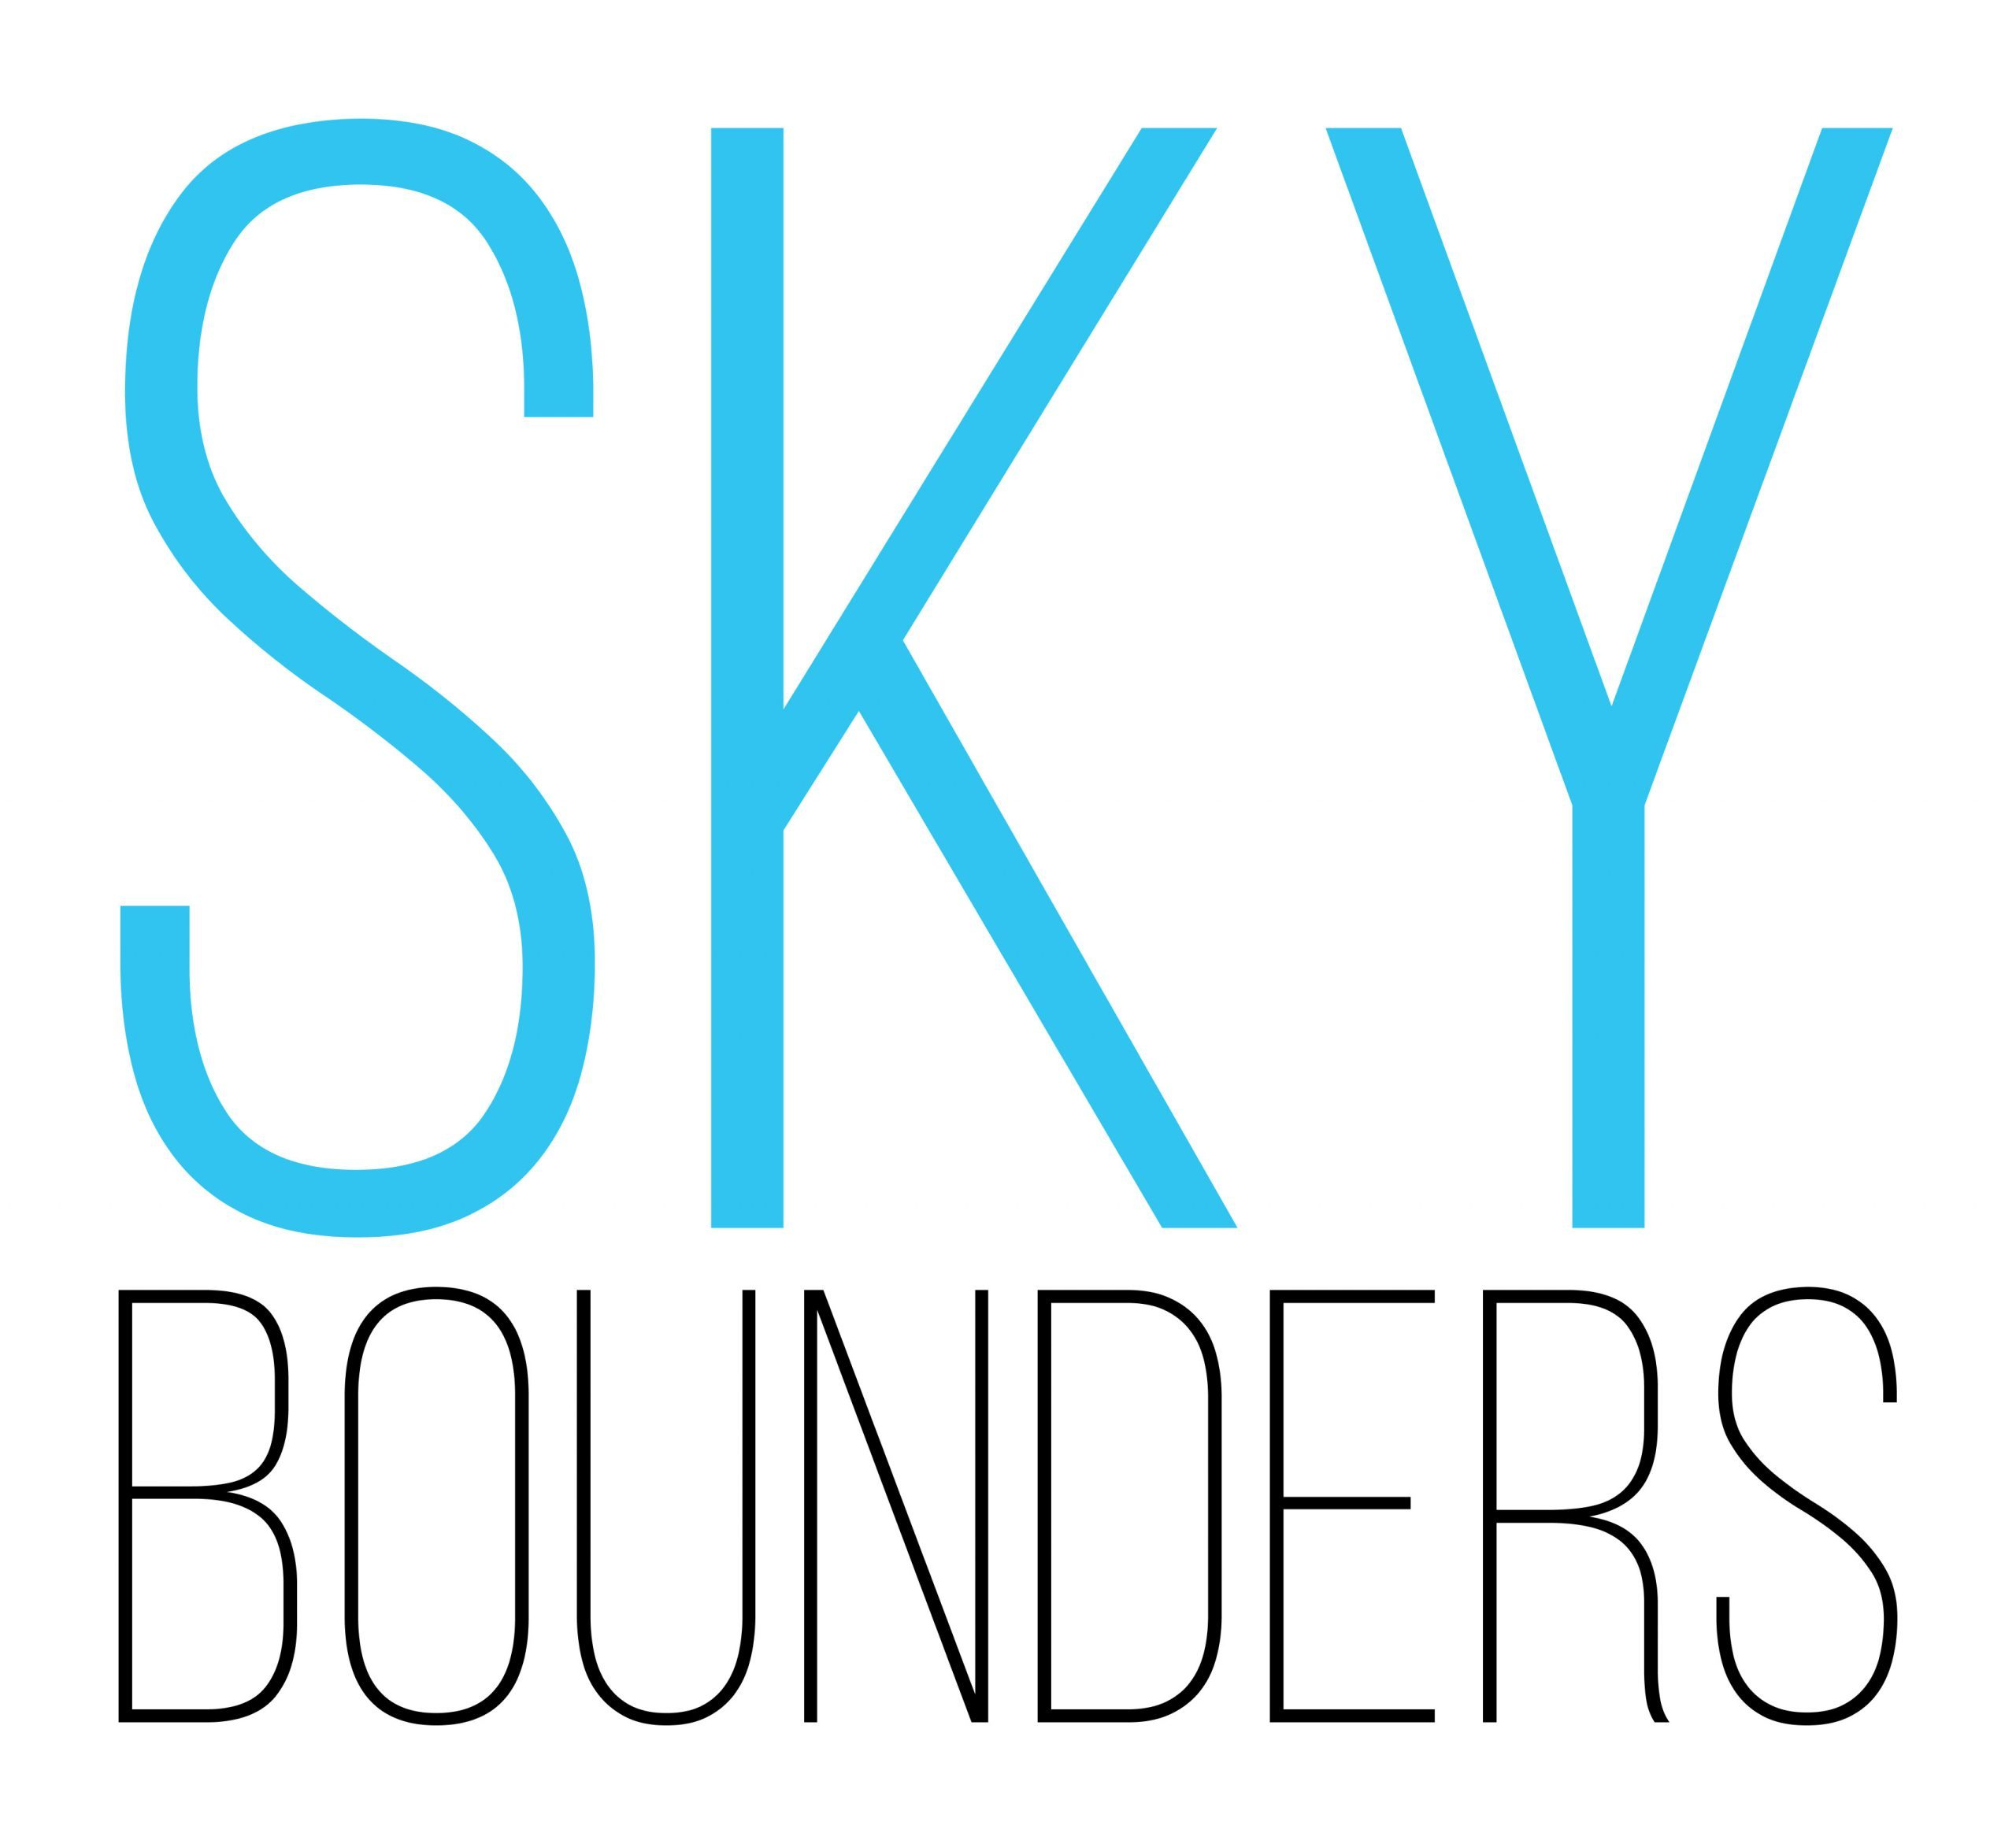 Sky Bounders - Improving Wellbeing, Mental Health and Performance